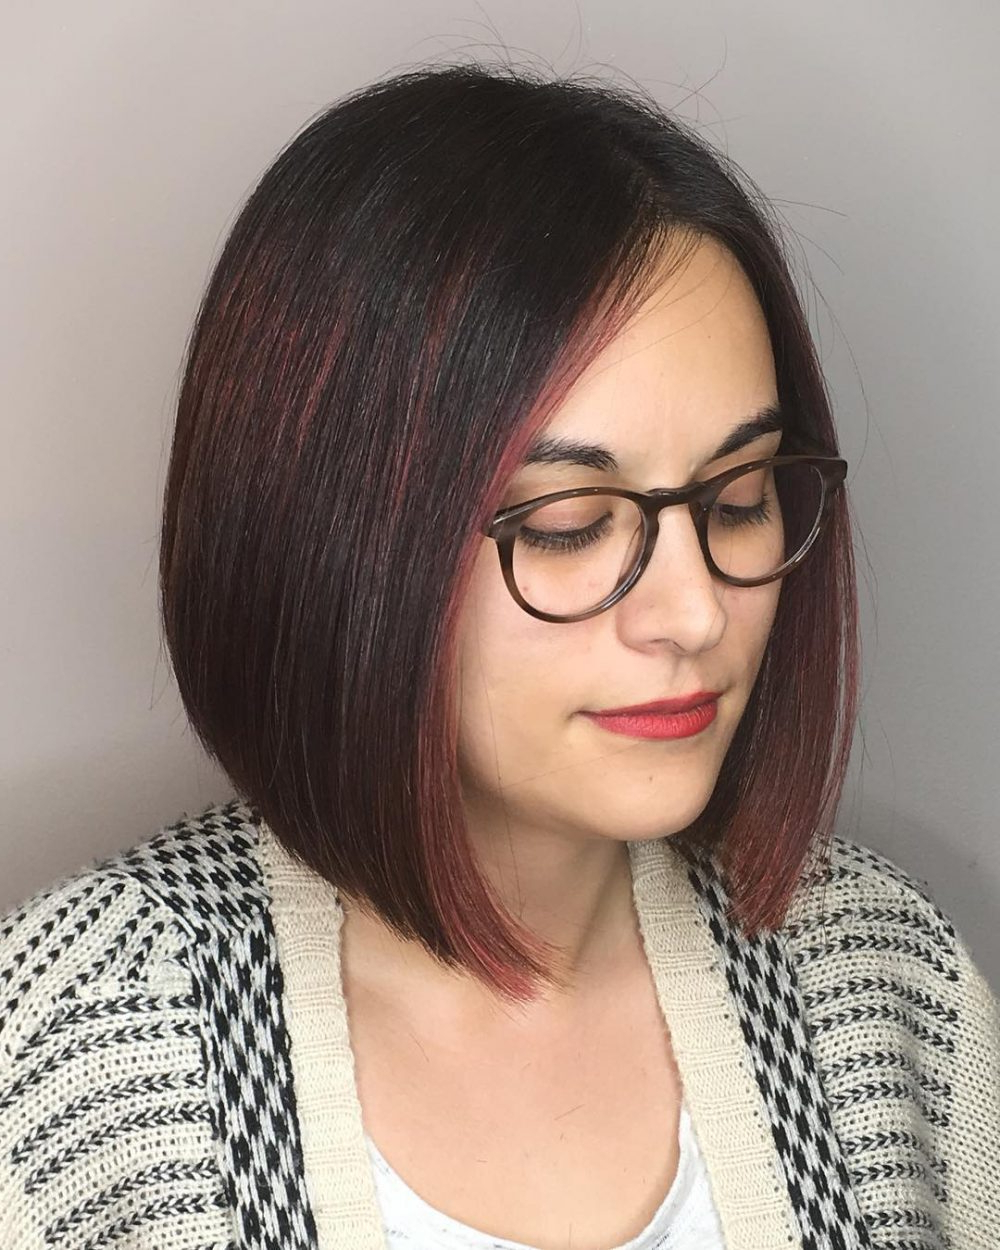 28 Most Flattering Bob Haircuts For Round Faces In 2018 For Short Hairstyles For Round Faces And Glasses (View 10 of 25)